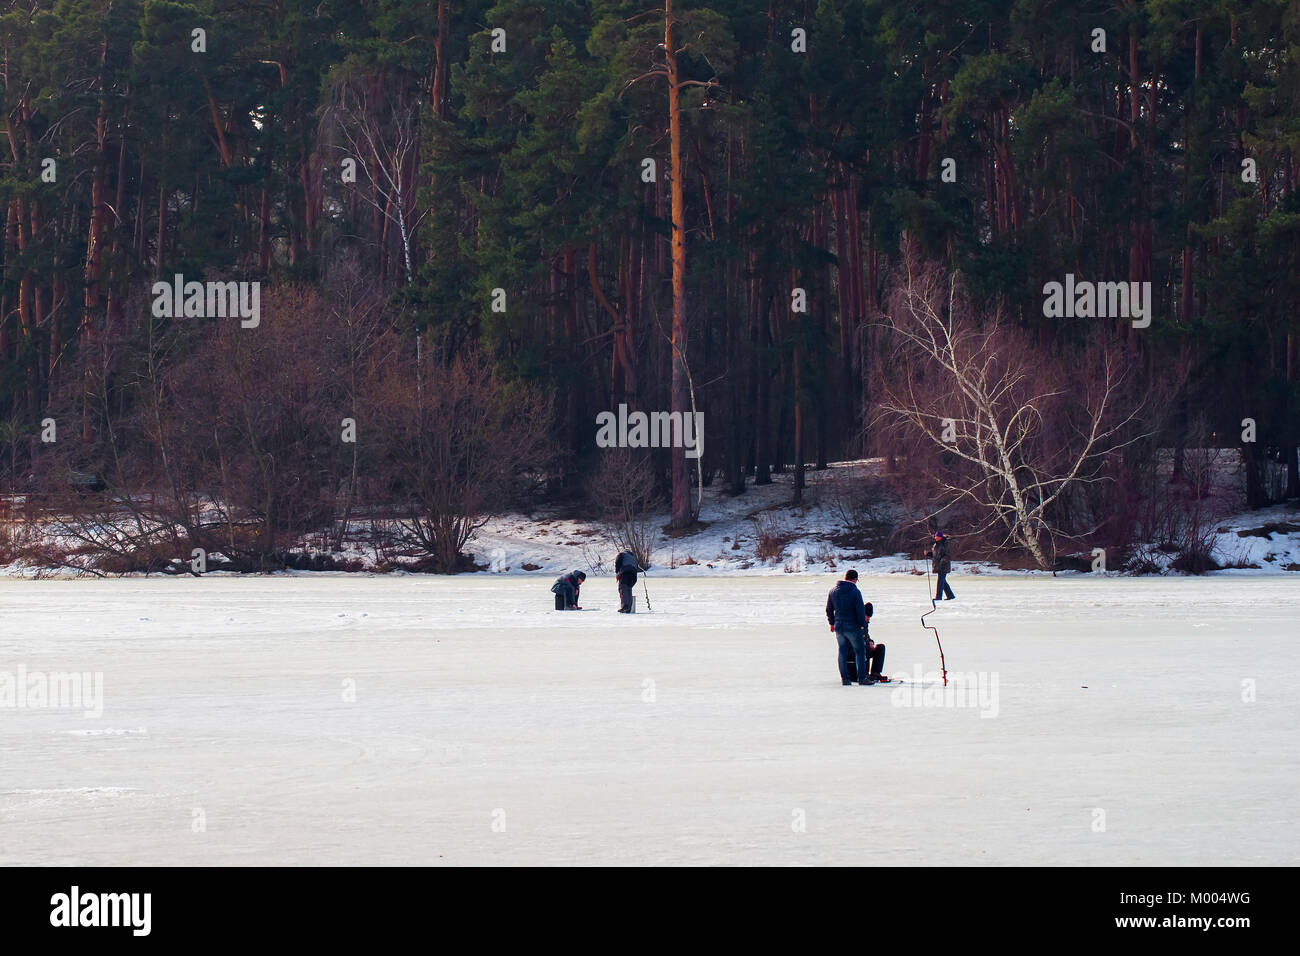 Winter fishing. River, lake near forest in ice. Anglers, Fishermens during your favorite leisure time. - Stock Image